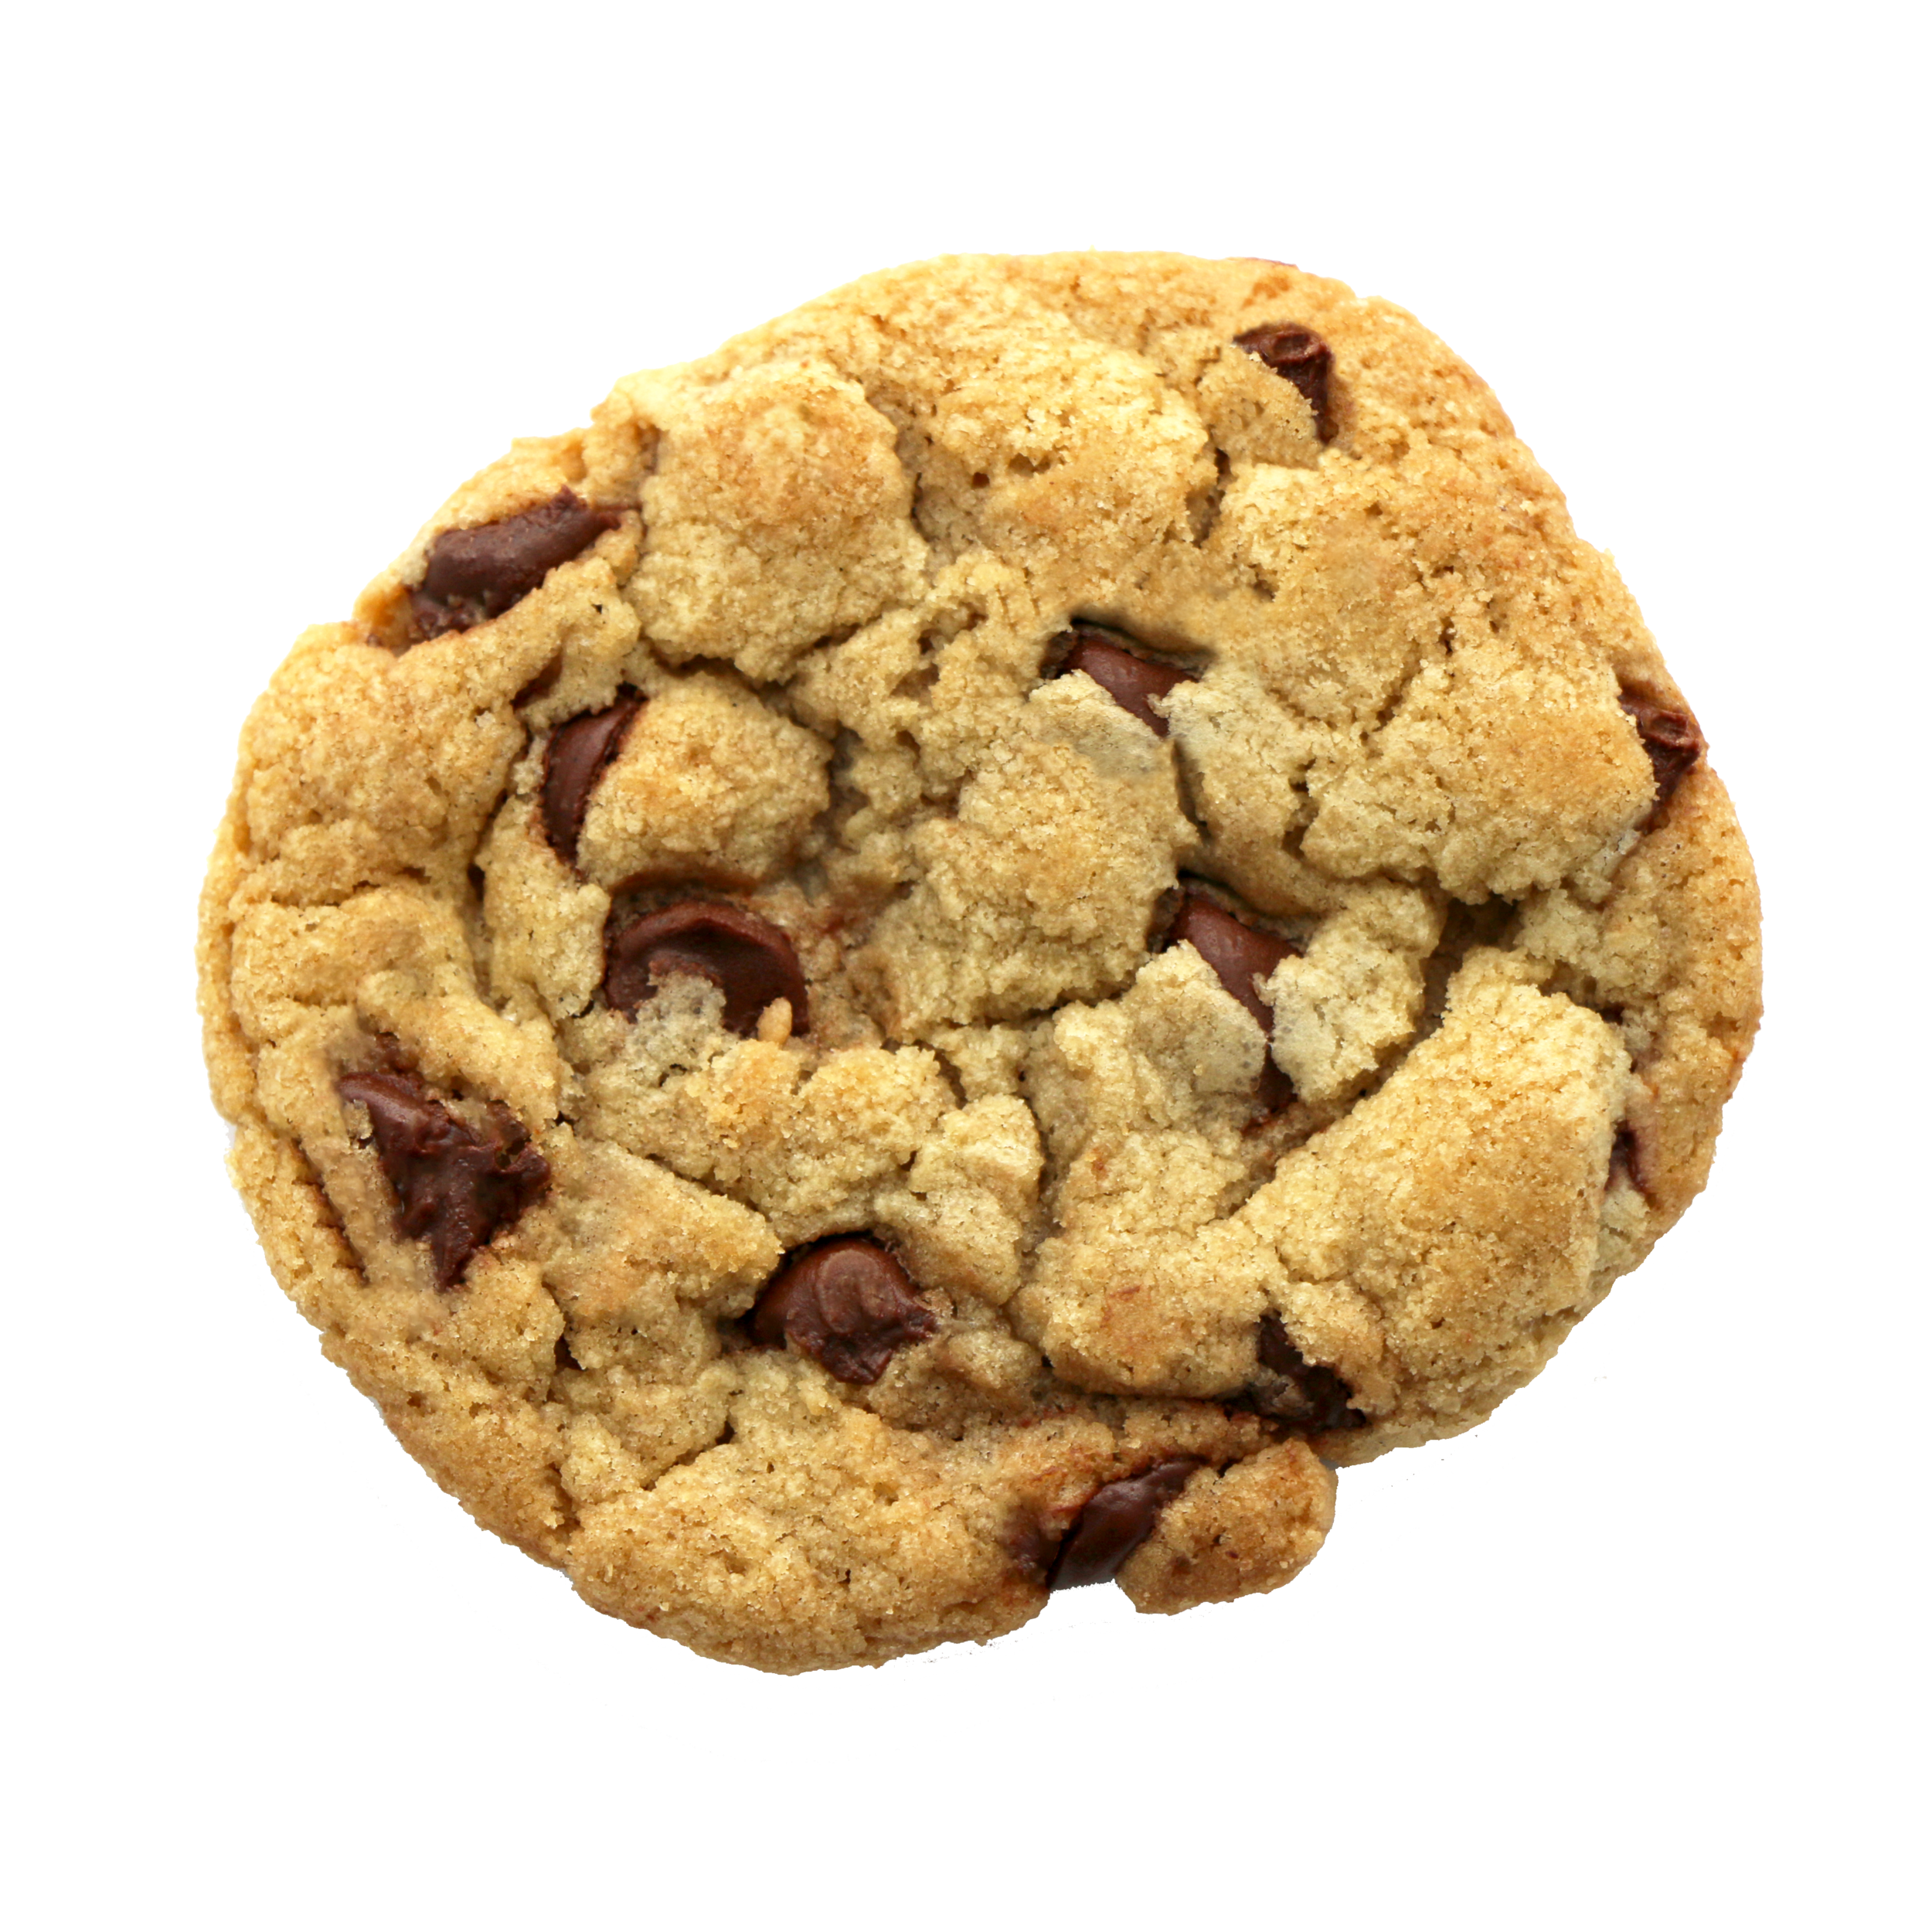 10mg Chocolate Chip Cookie.png